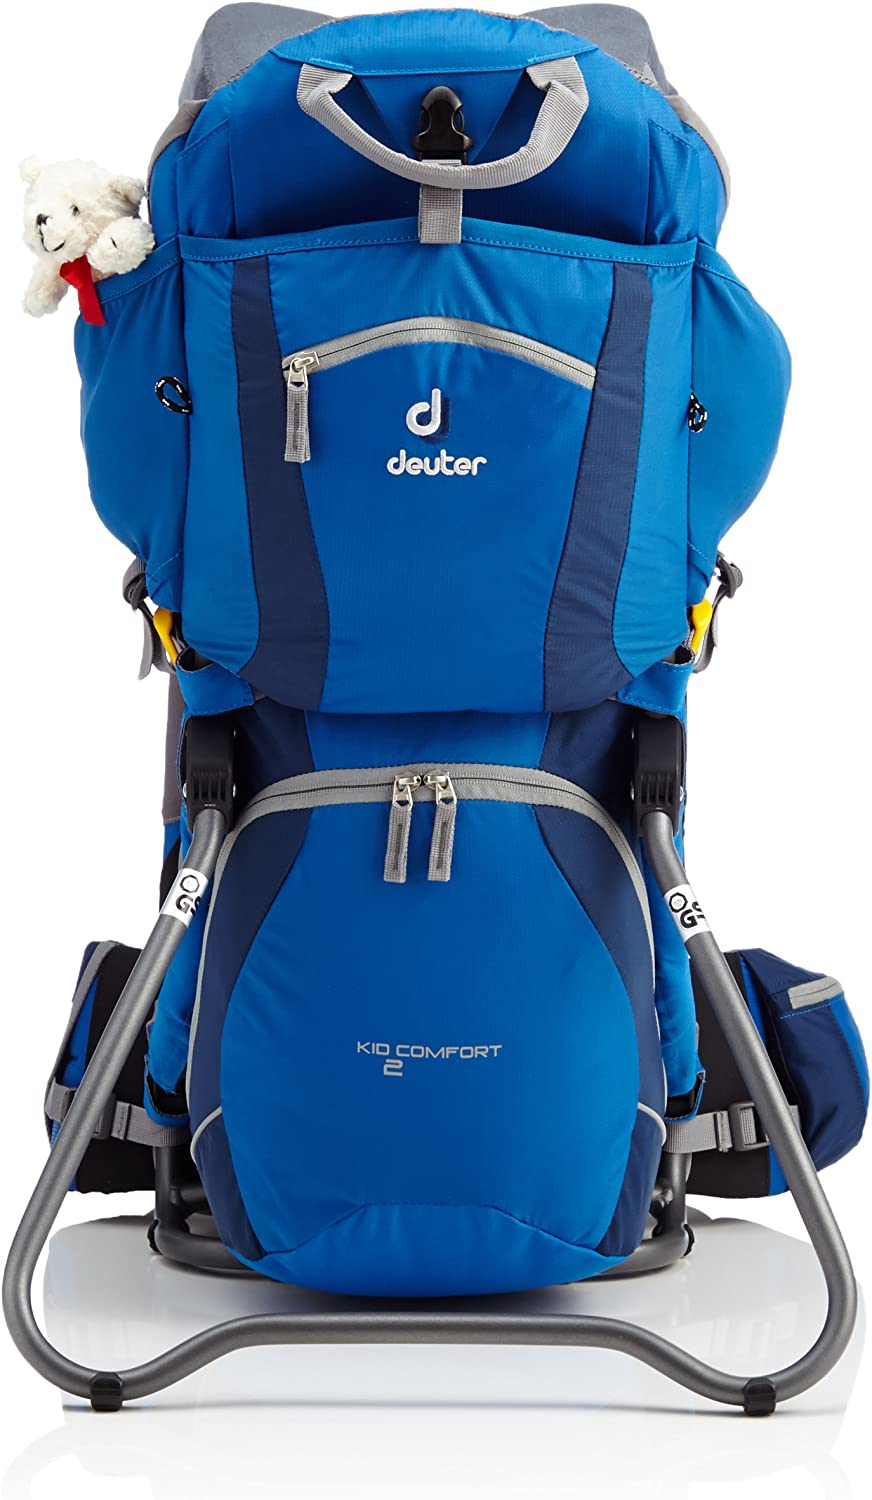 Amazon Com Deuter Kid Comfort Air With Sun Roof And Raincover Sports Outdoors